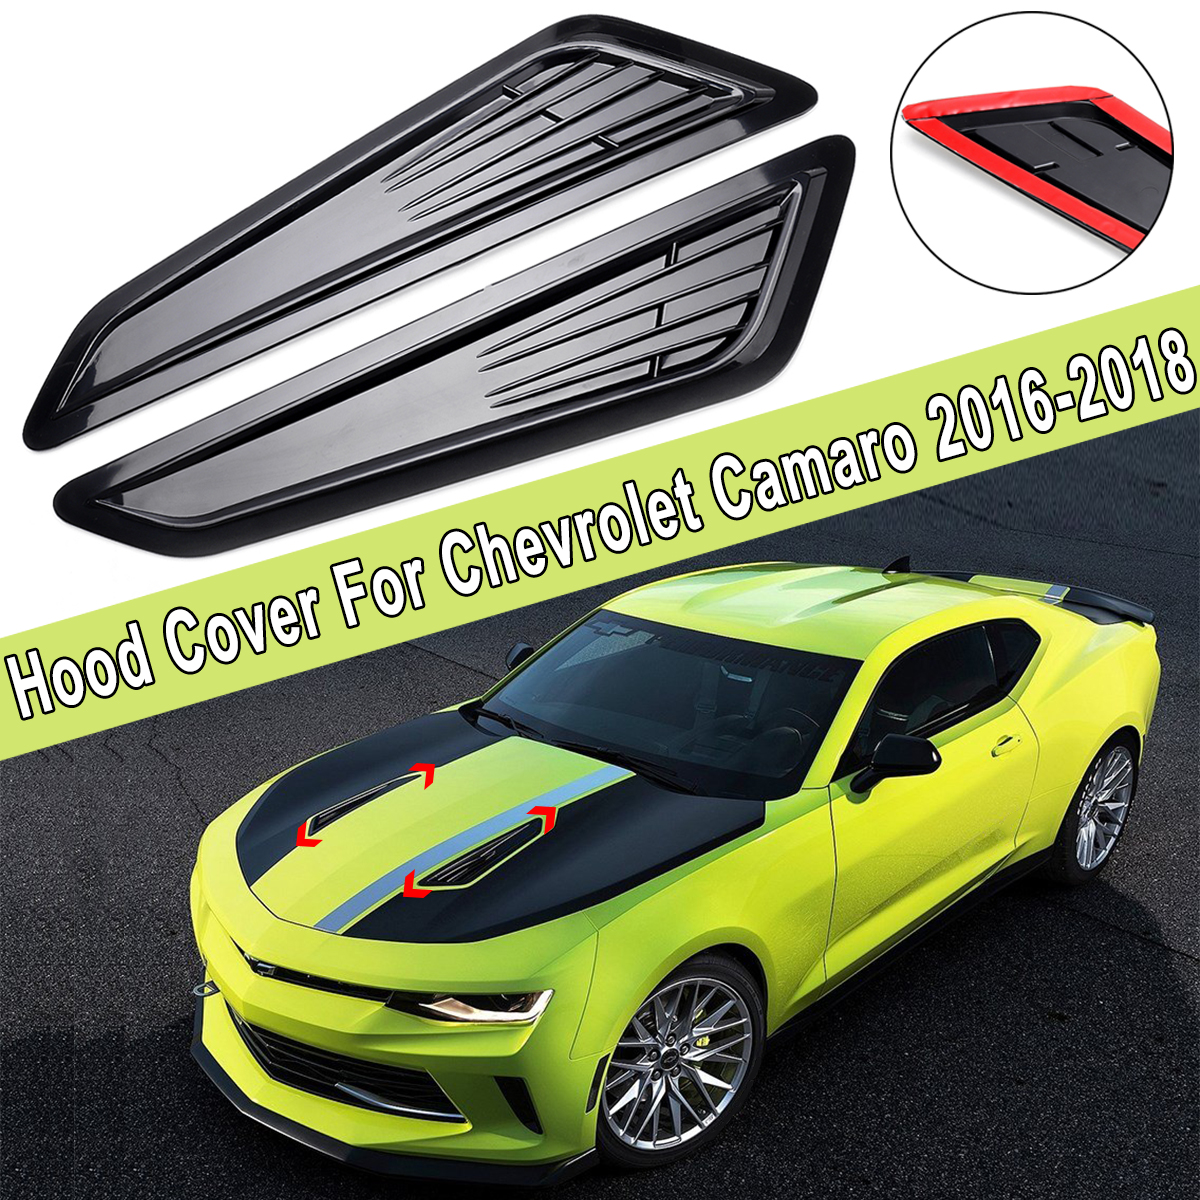 Car Decor ABS 3D Sticker SS Style Hood Air Flow Engine Outlet Vent Cover for Chevrolet for Camaro 1LT LT RS 2016 2017 2018 ob 515 universal air flow vent hood covers for car silver pair